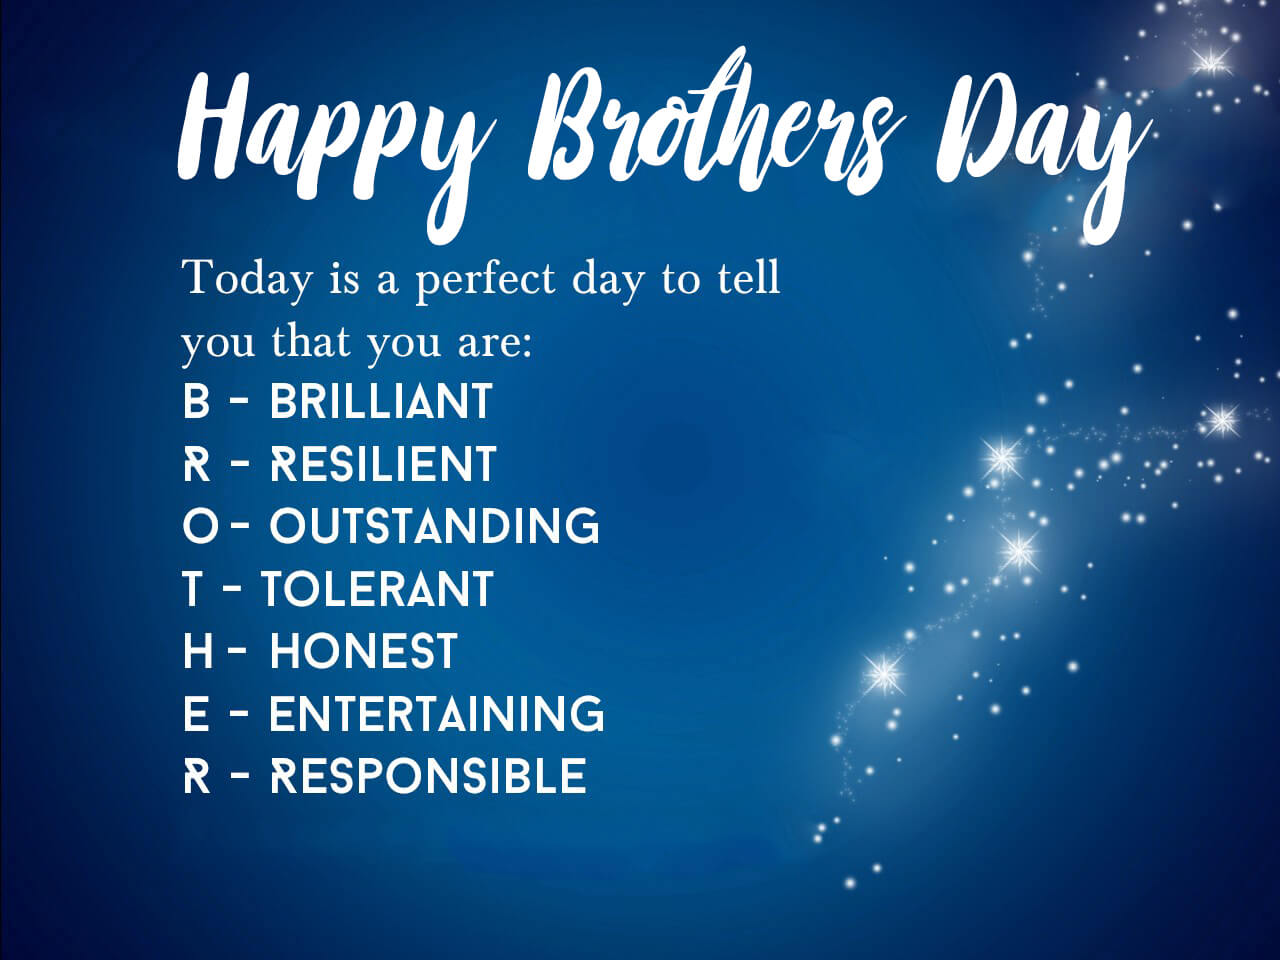 Happy Brothers Day Wishes Greetings Expansion Text Image 1280x960